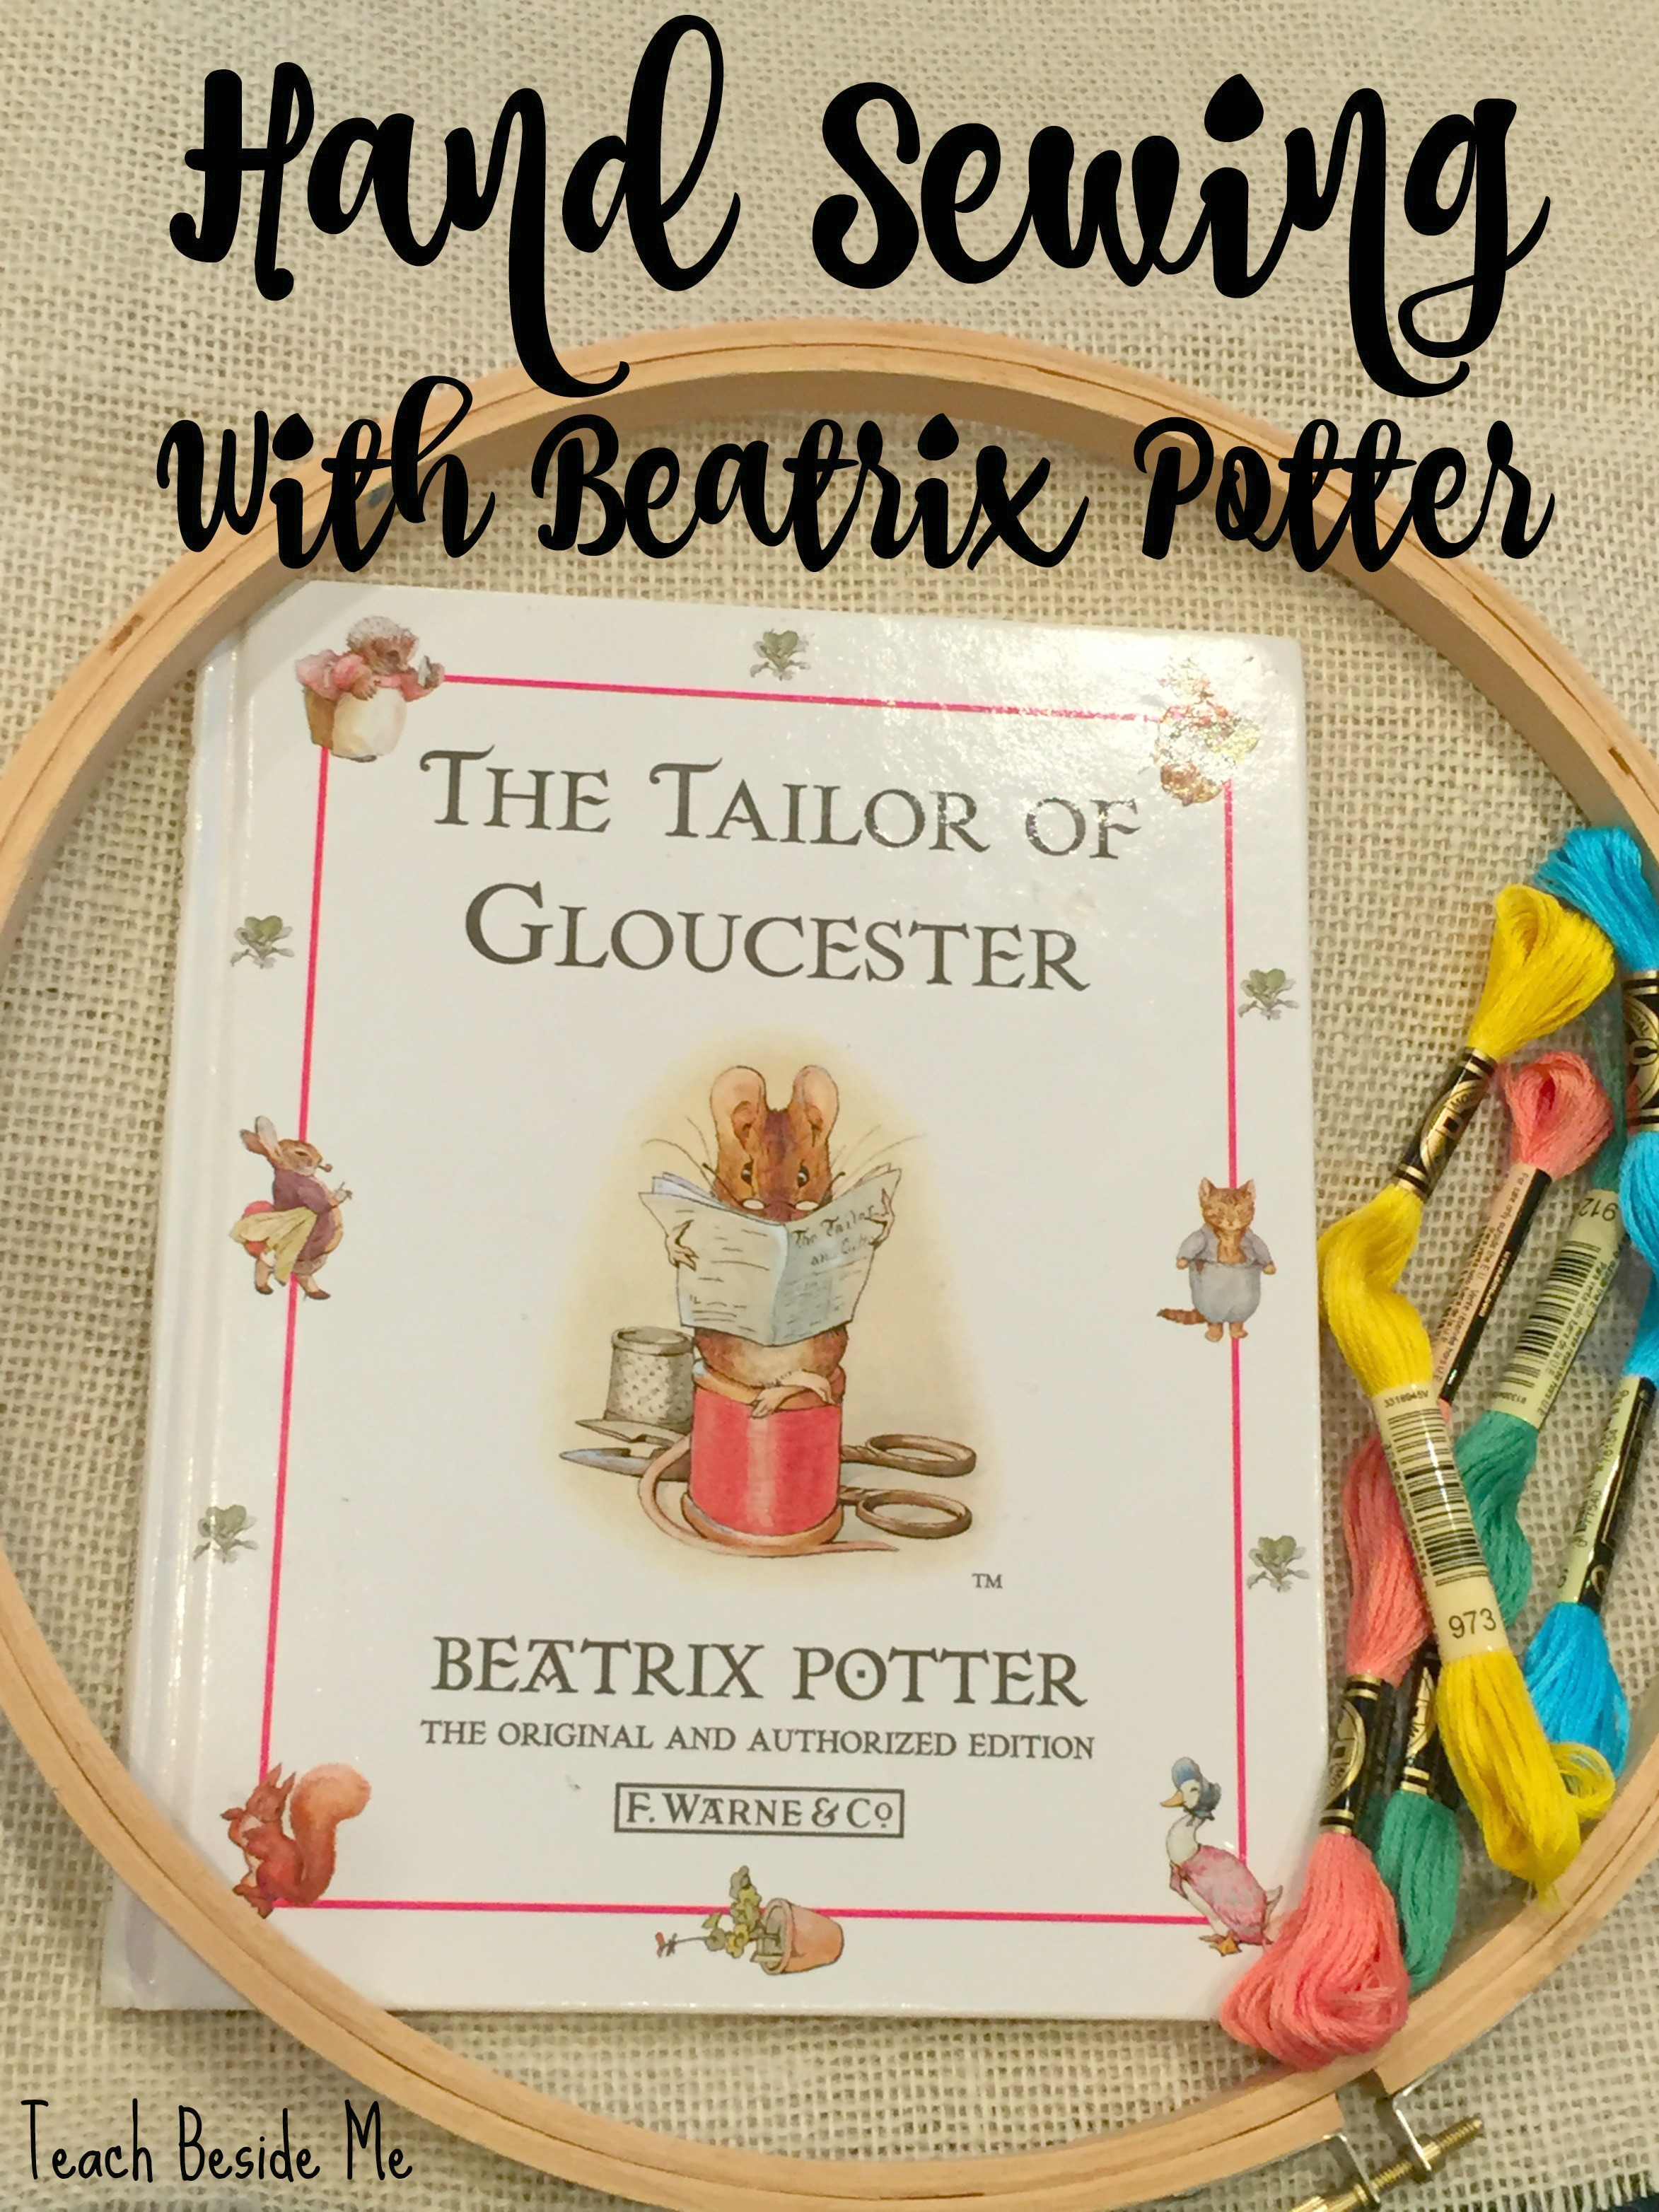 Hand Sewing with Beatrix Potter and the Tailor of Gloucester